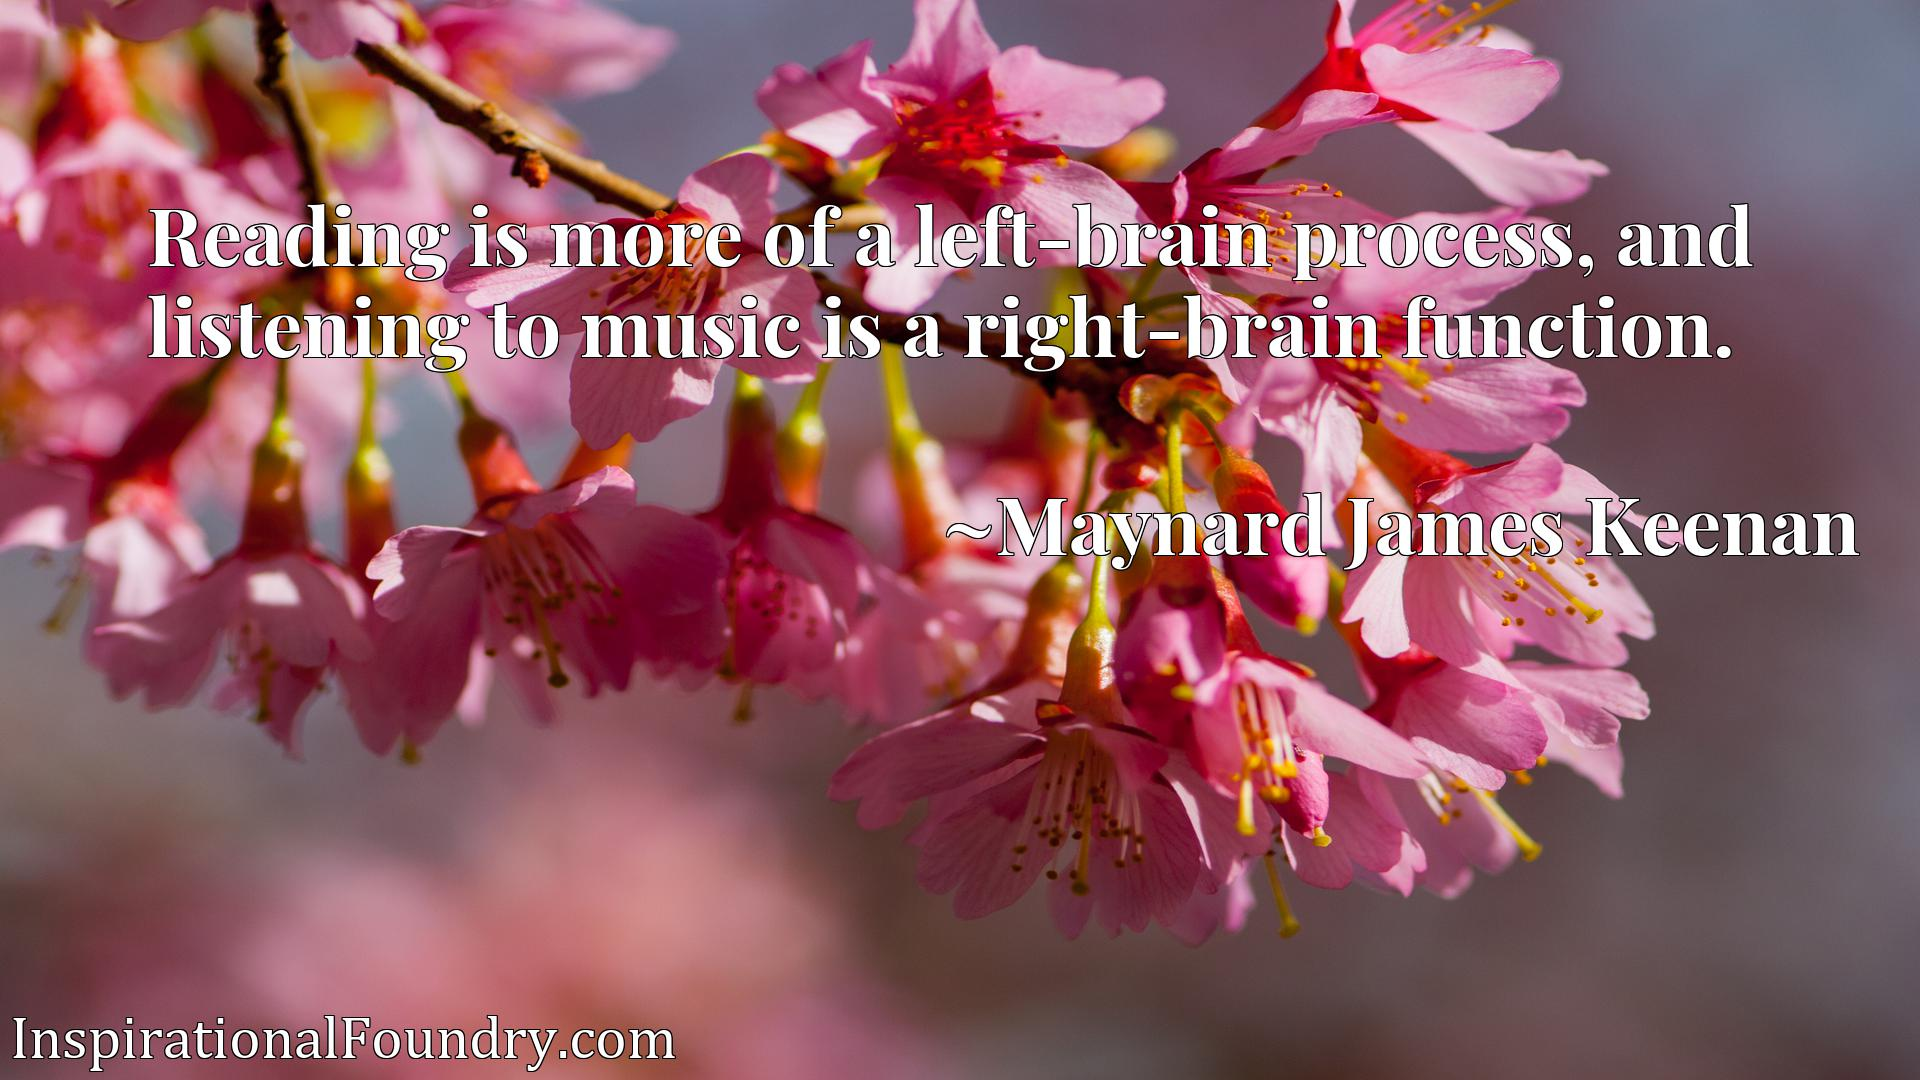 Reading is more of a left-brain process, and listening to music is a right-brain function.